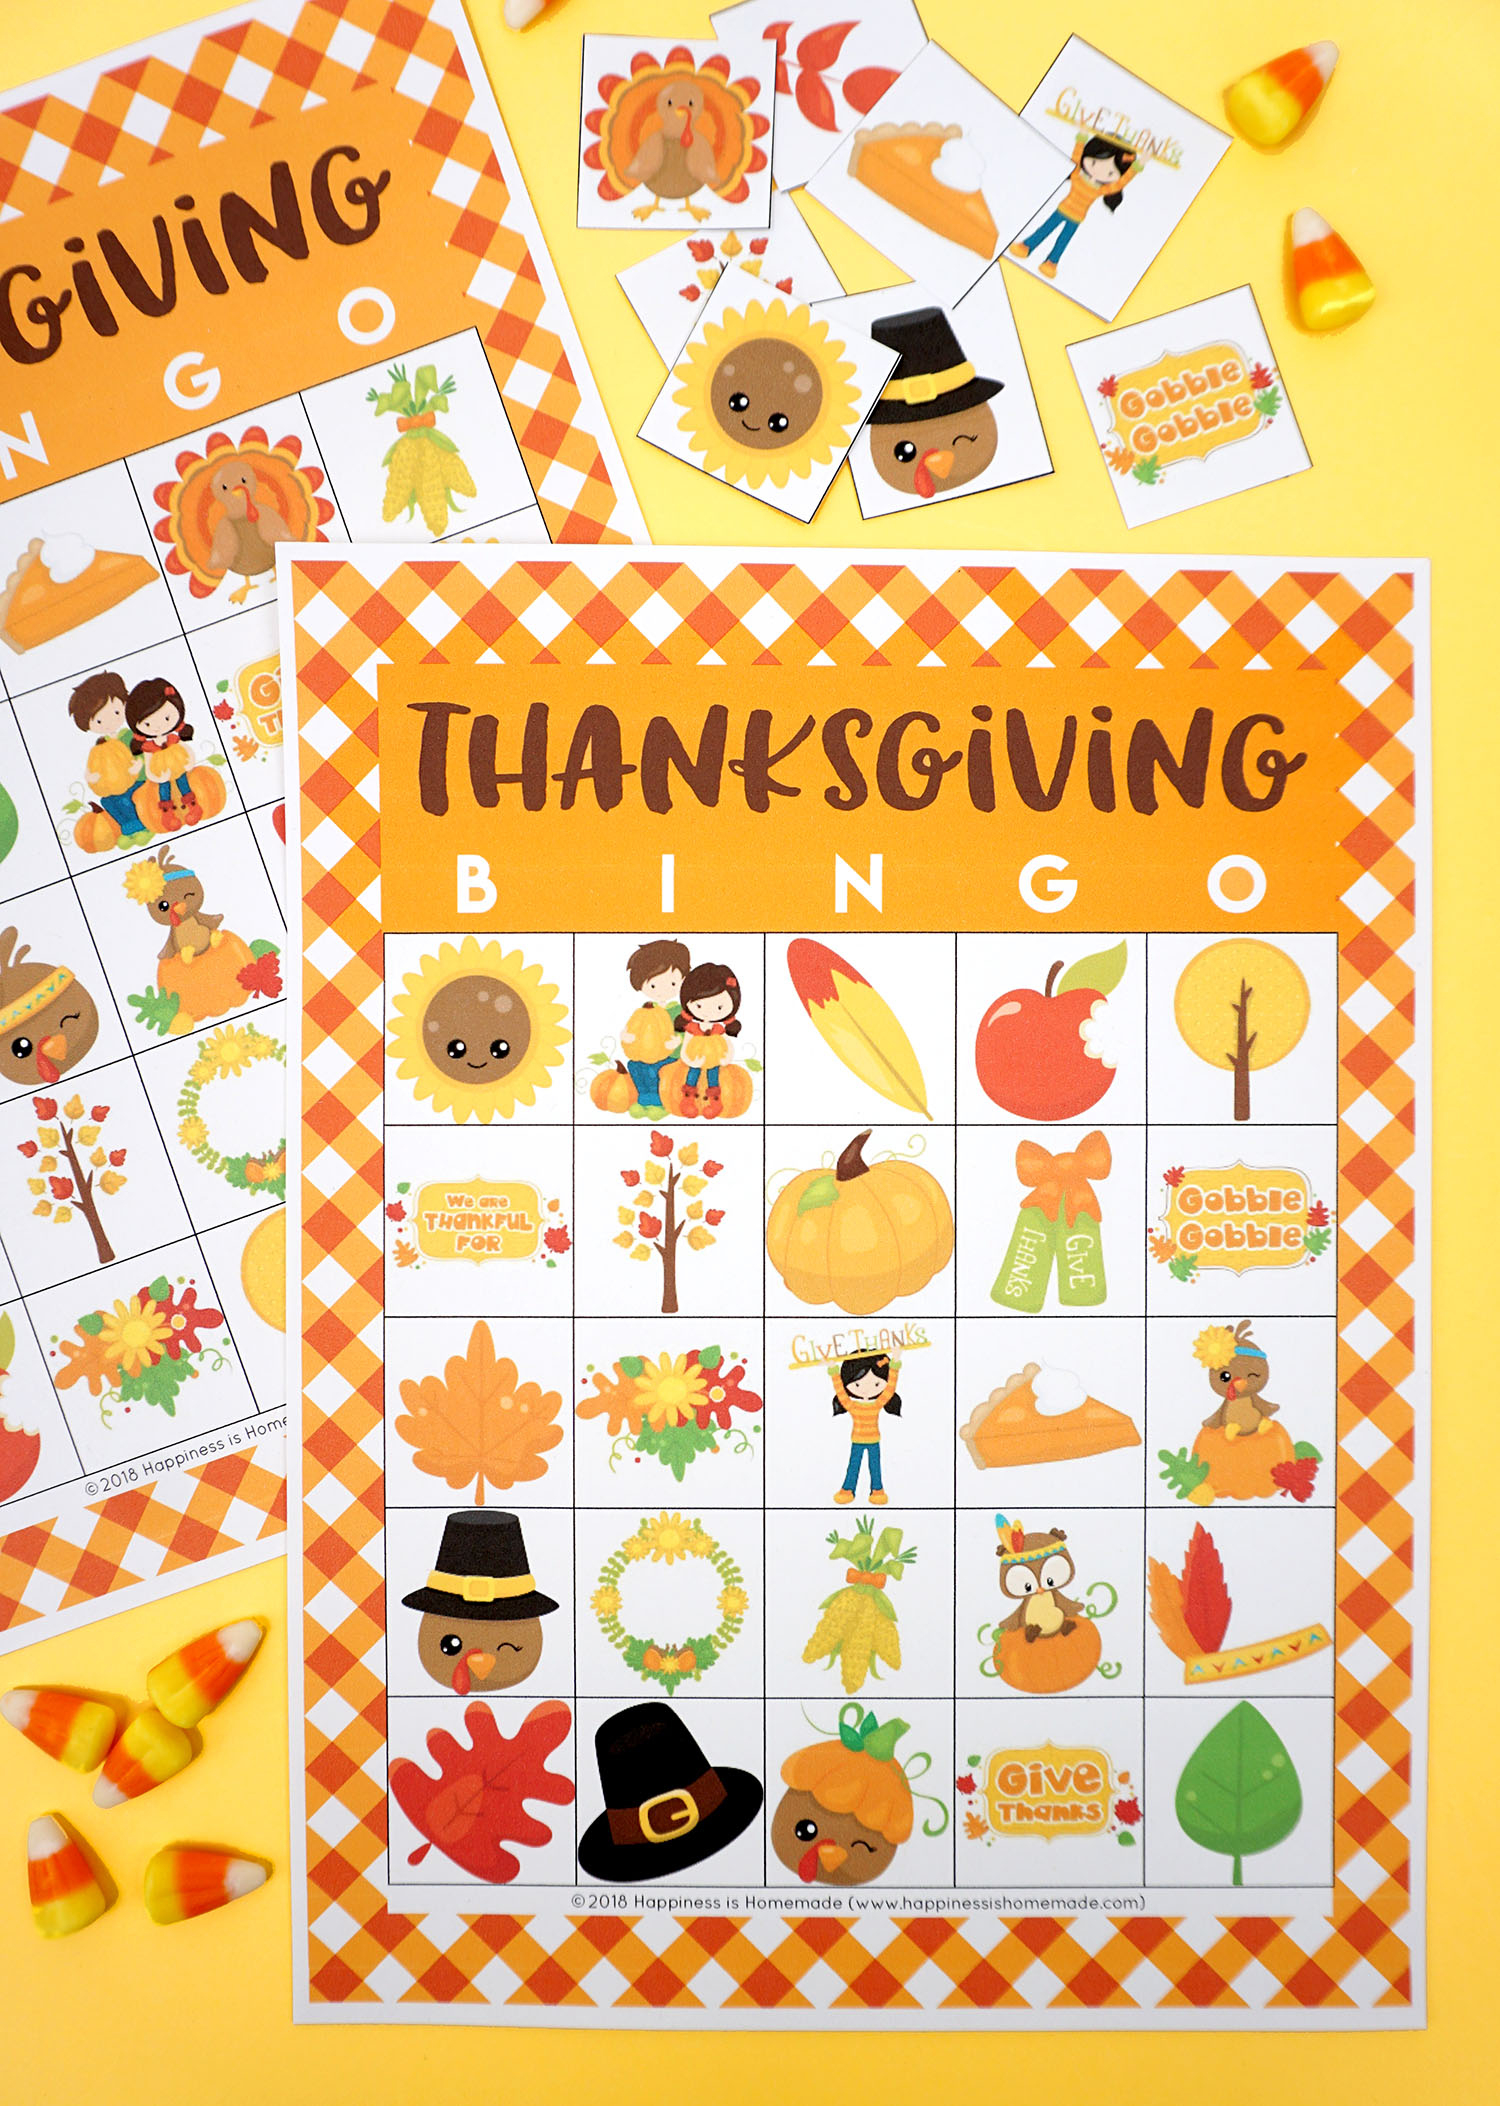 Free Printable Thanksgiving Bingo Cards - Happiness Is Homemade - Free Printable Bingo Games